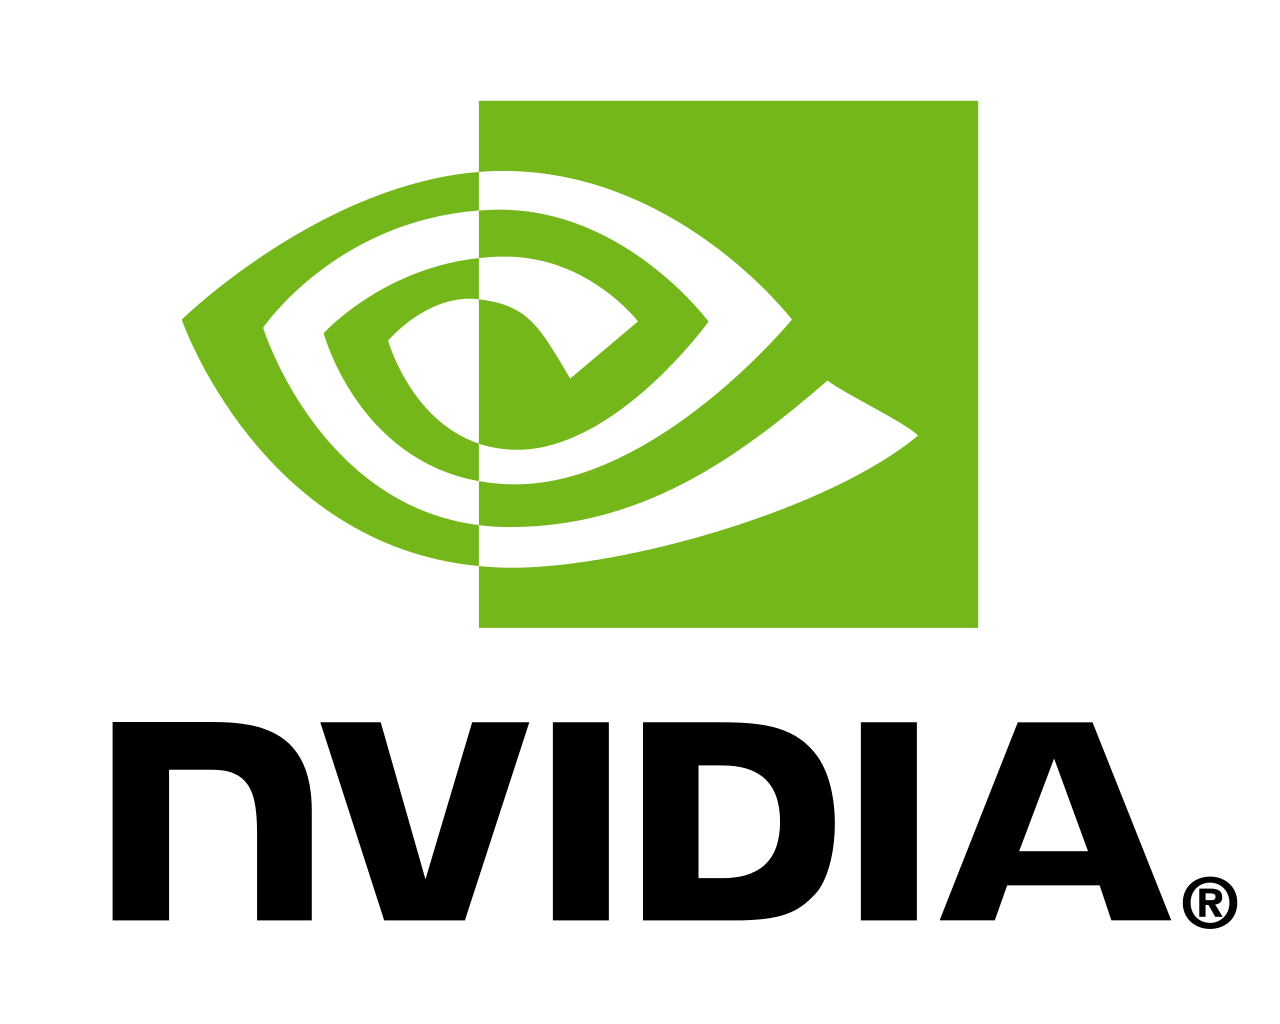 NVIDIA Corporation (NASDAQ:NVDA) Shares Bought by Baird Financial Group Inc